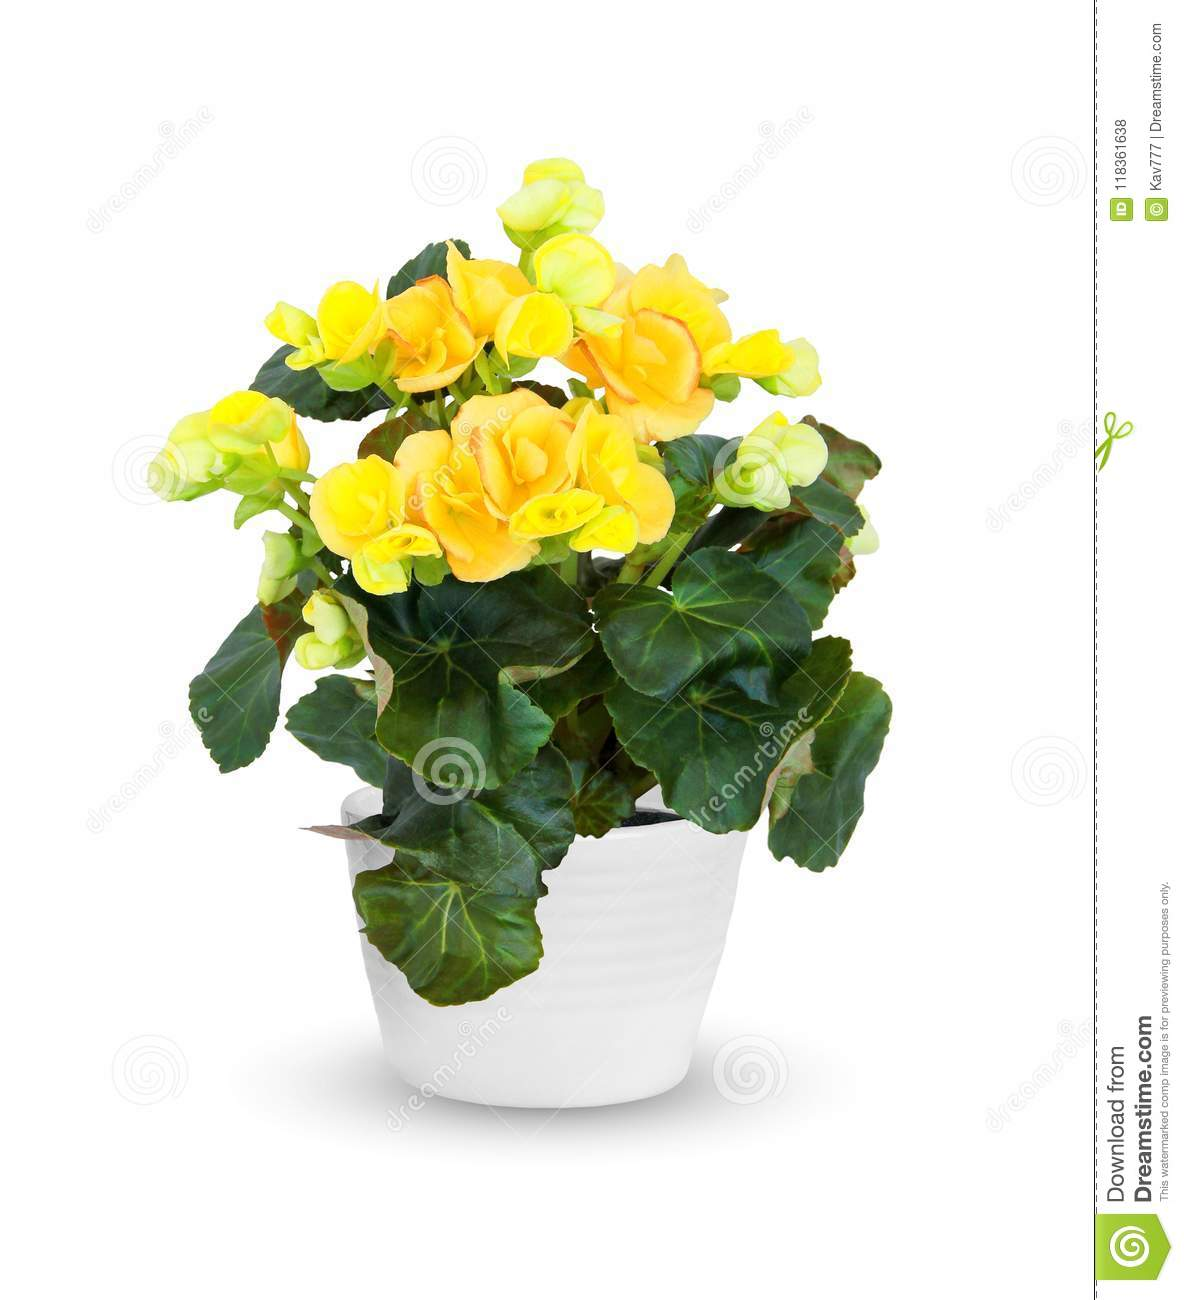 Houseplant - flowering Begonia a potted plant over whit